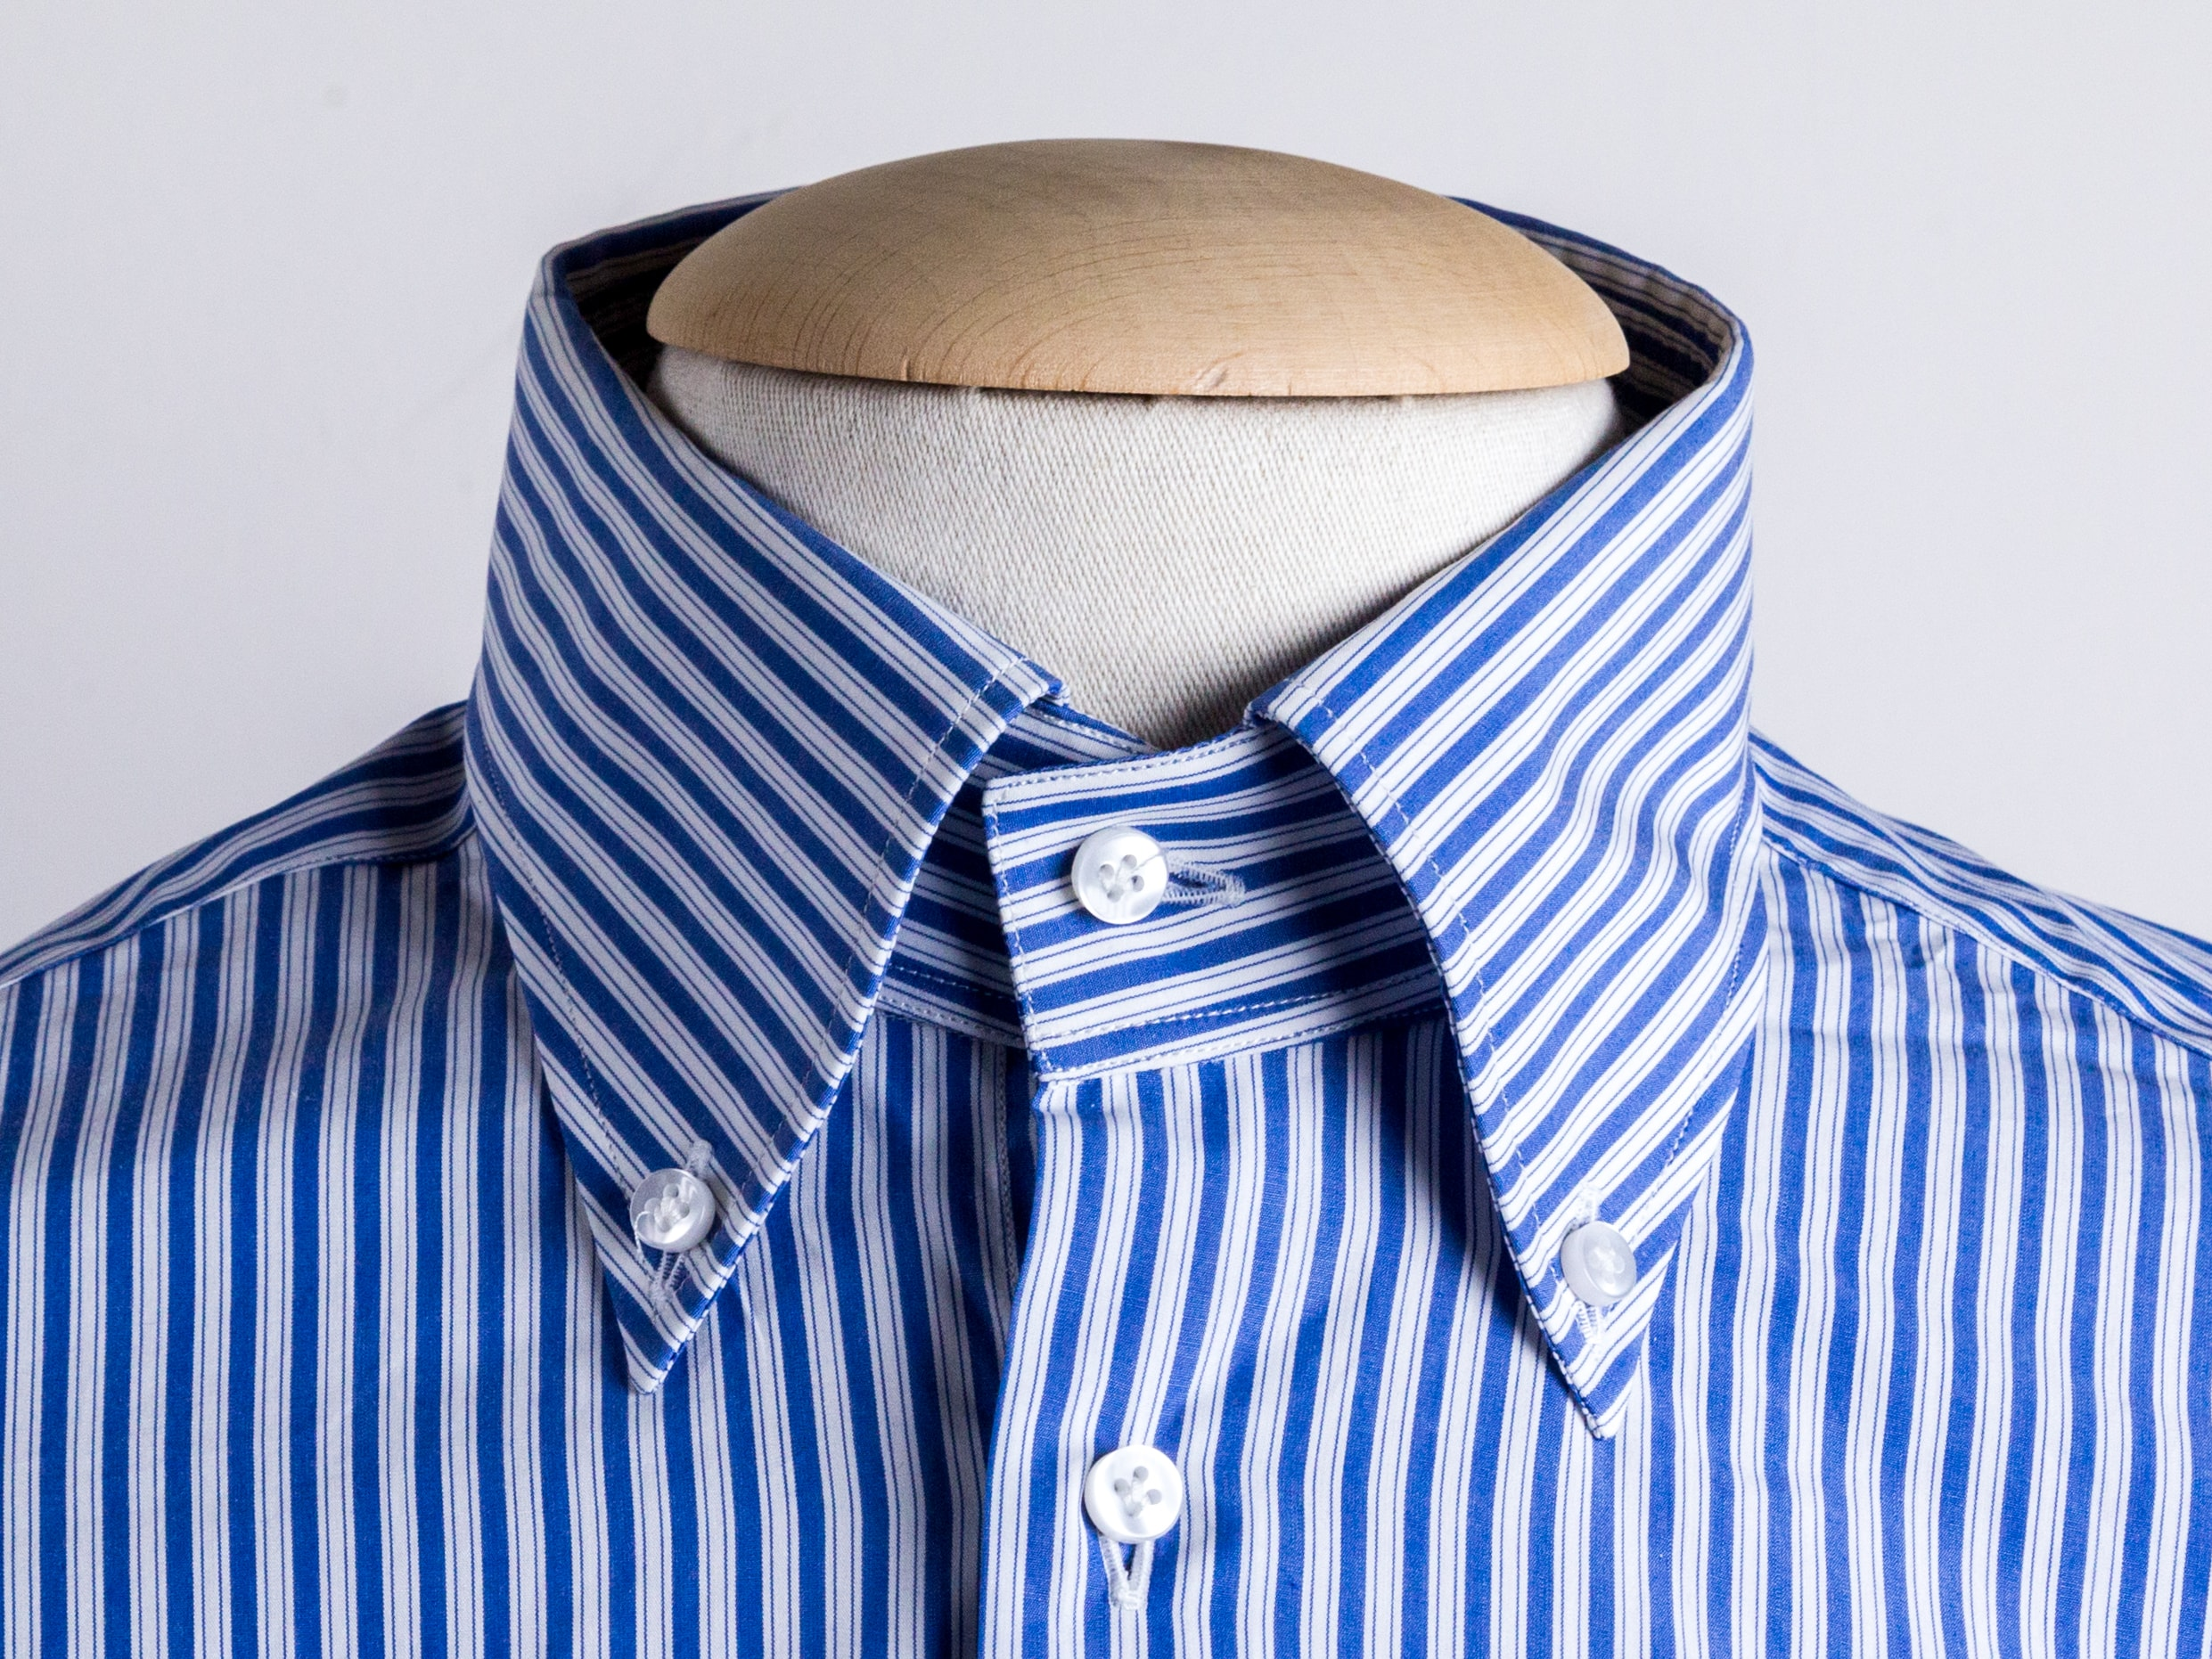 Dress shirt collar styles the complete guide from casual for Spread collar dress shirt without tie